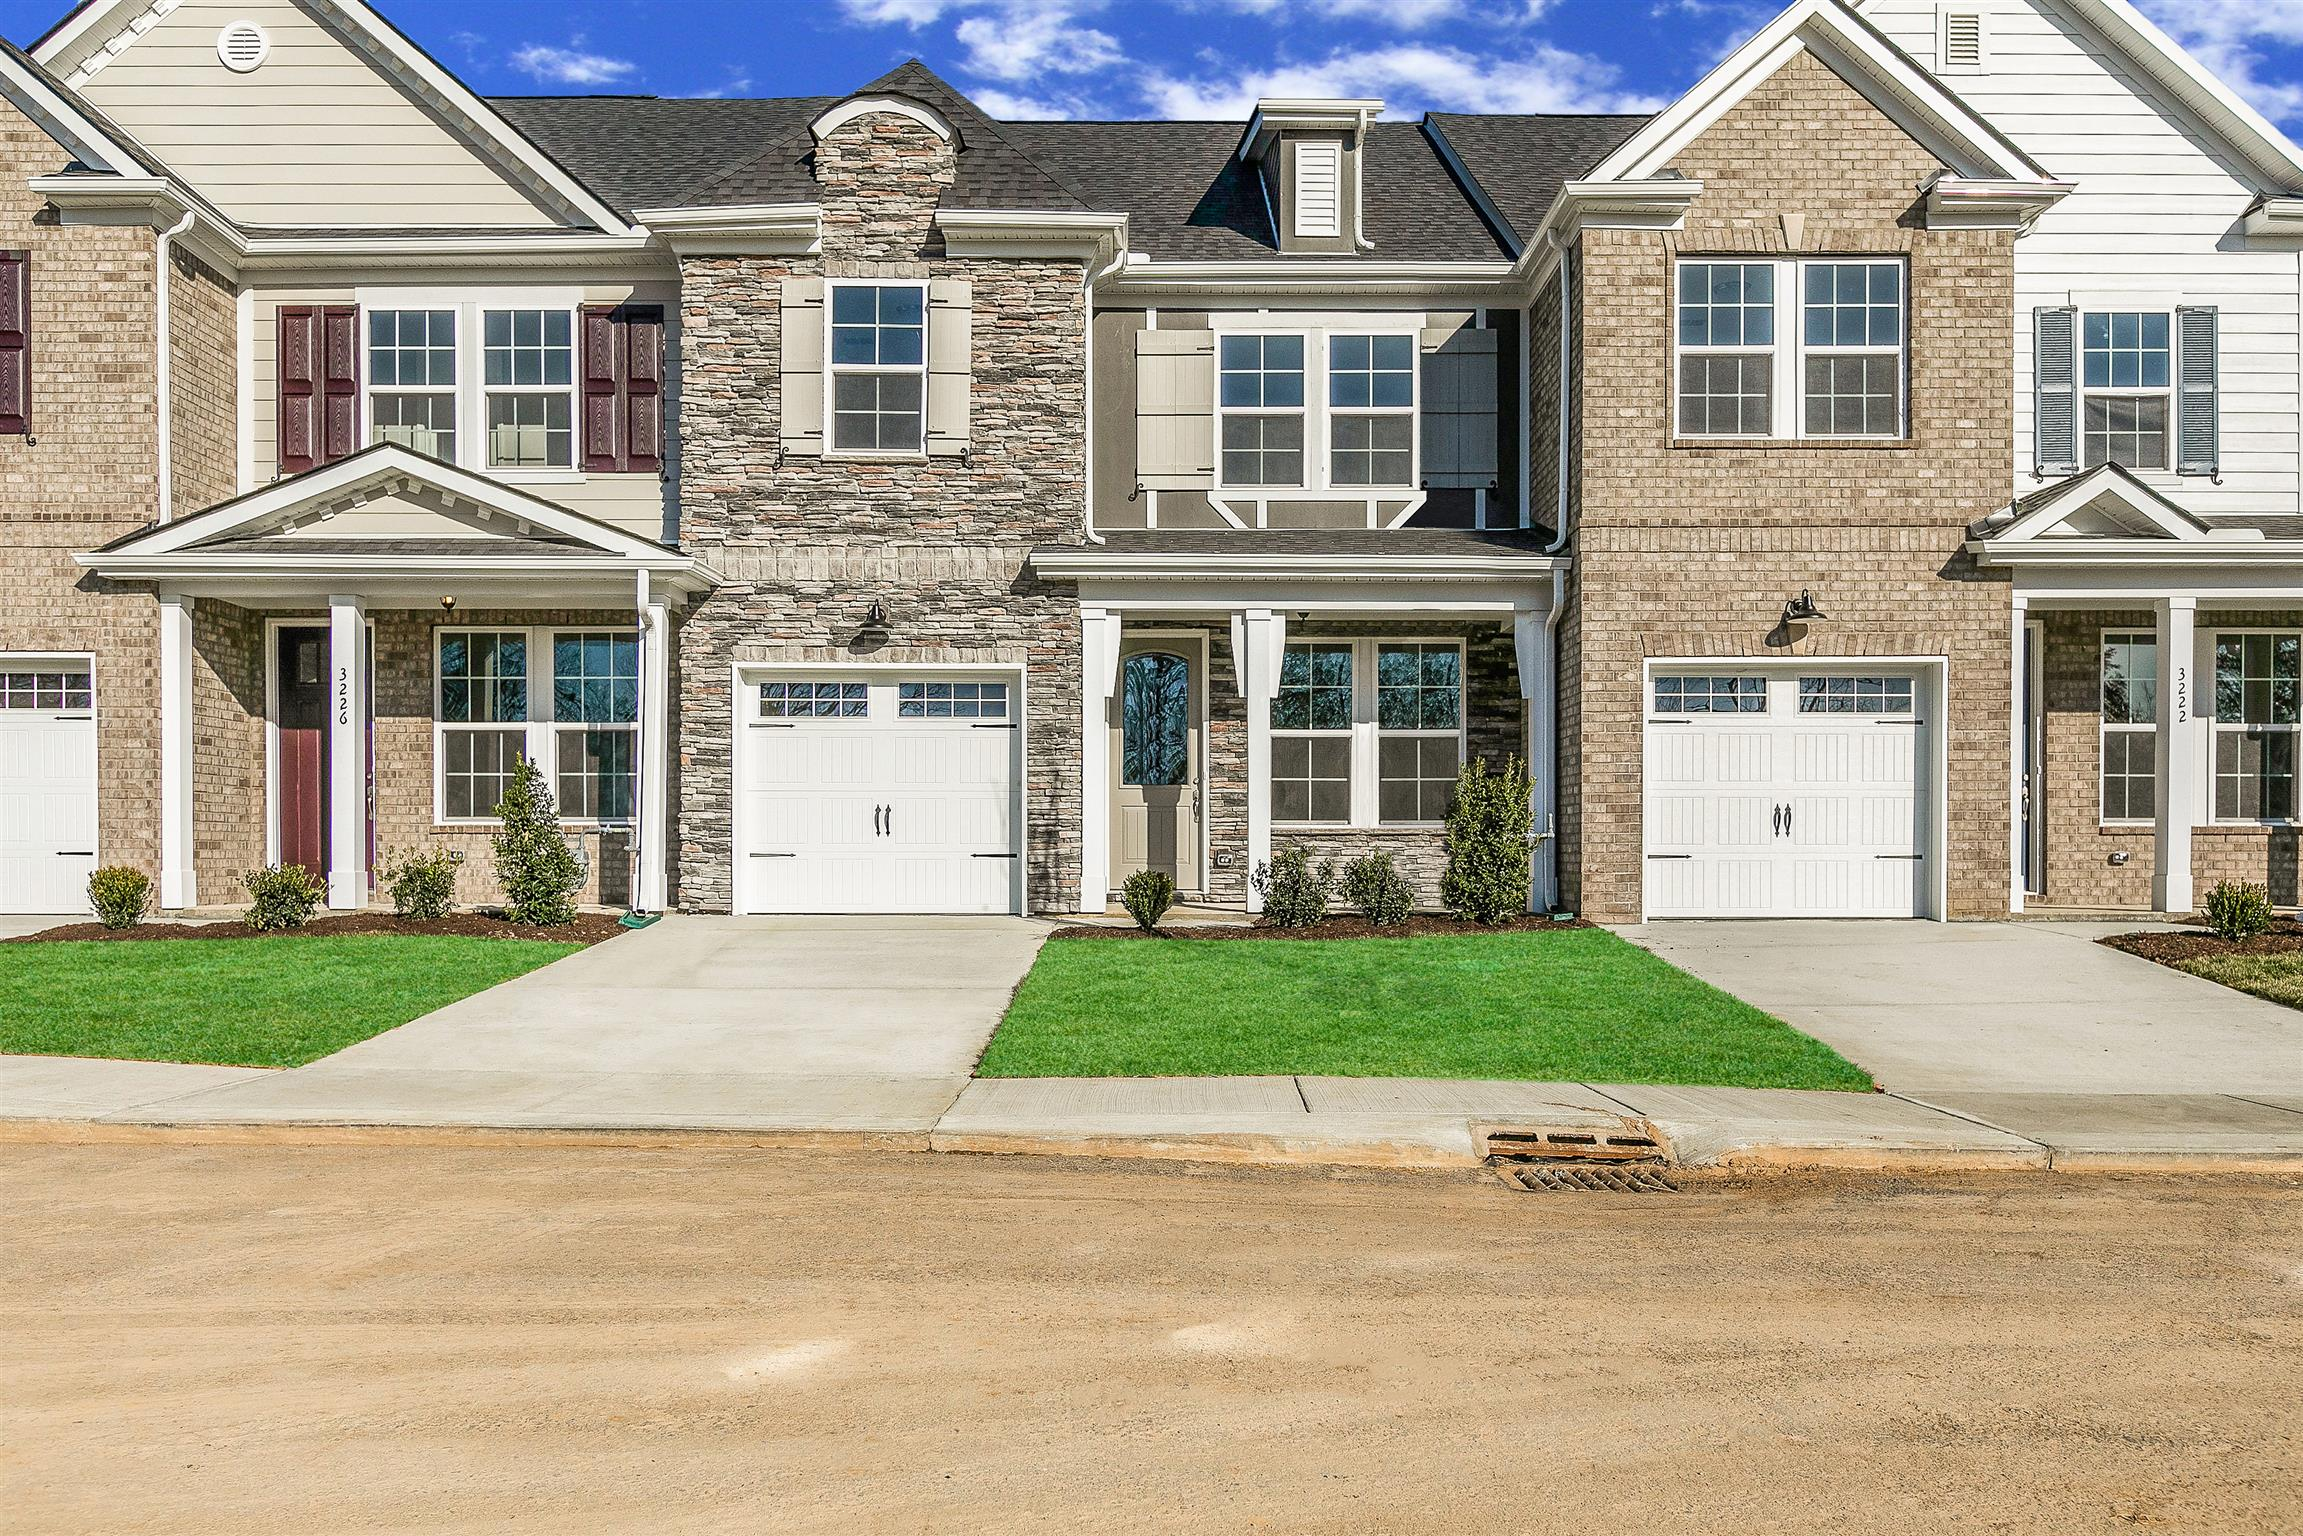 3224 Brookberry Lane, Murfreesboro, TN 37129 - Murfreesboro, TN real estate listing